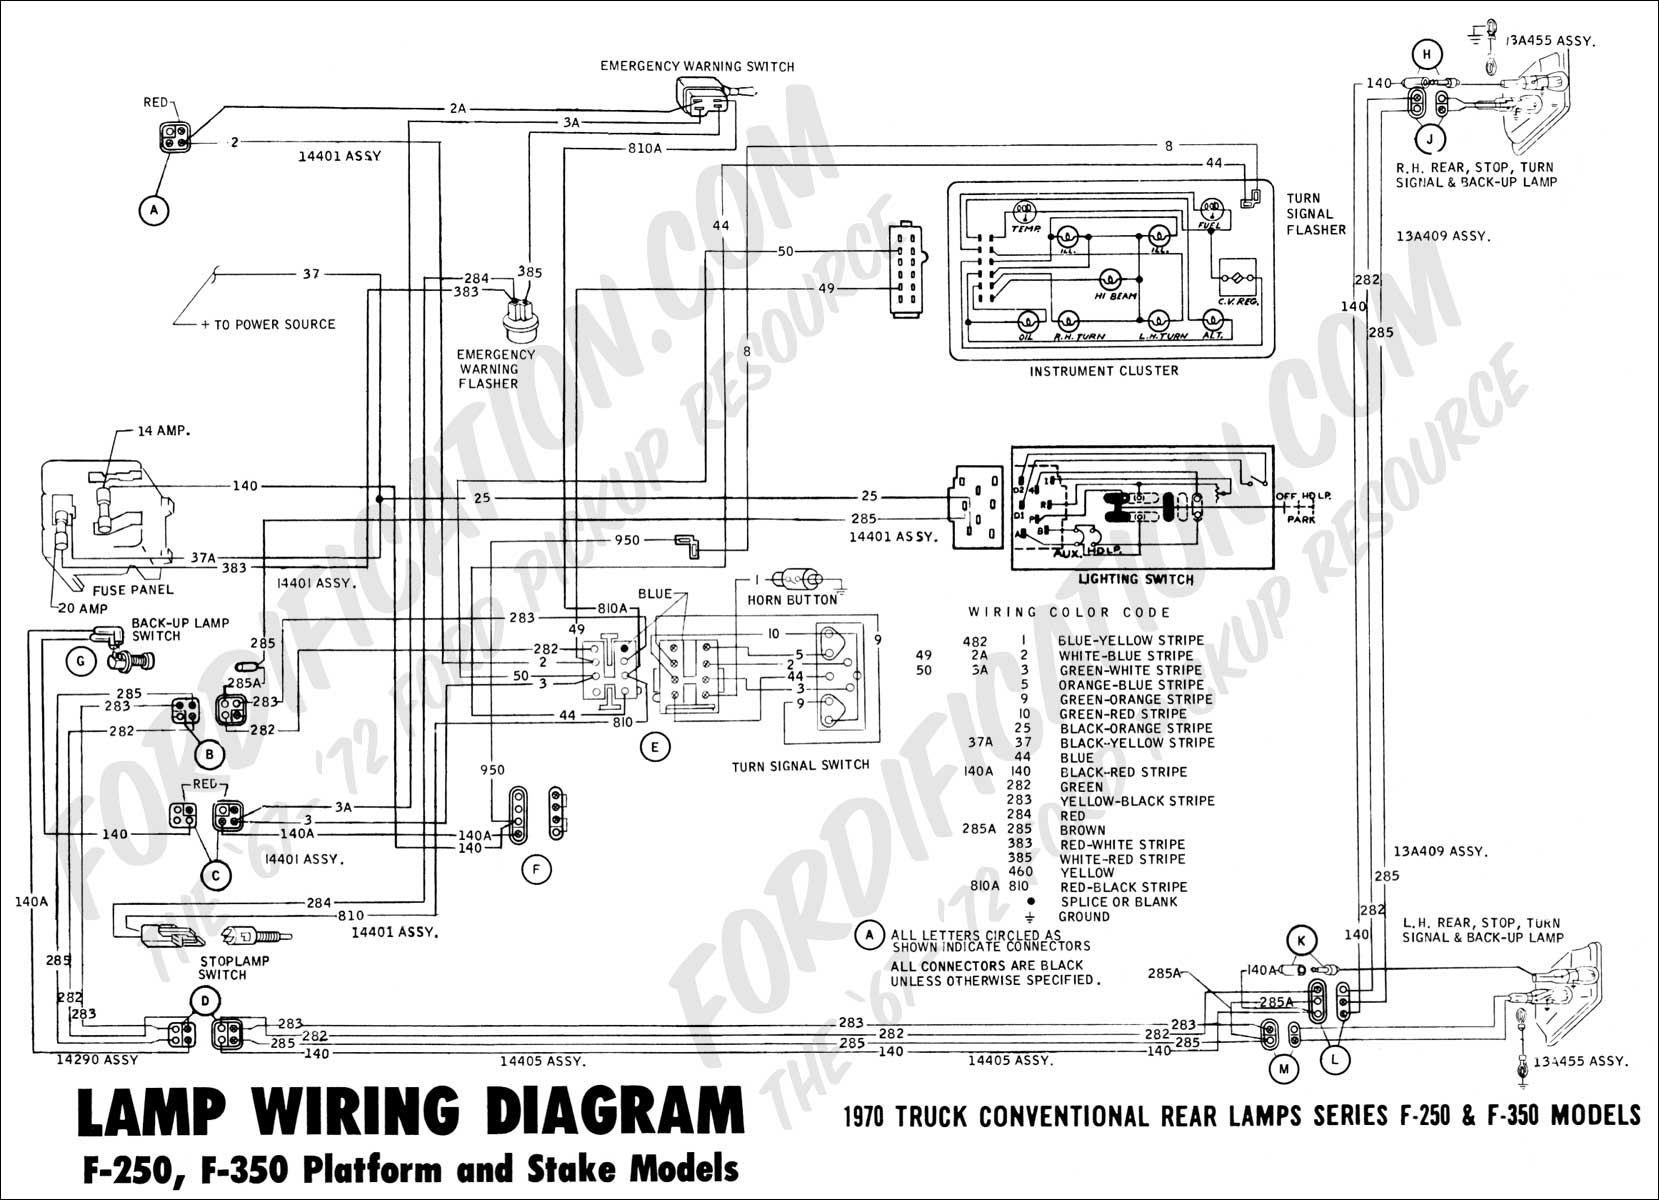 1990 ford e150 radio wiring diagram with 1973 Ford F 250 Wiring Diagram on 1993 Chevrolet Caprice Classic Ls moreover 17jo0 Fuse Diagram 1985 Ford F150 likewise 1168412 Wiring Diagram For 1987 Ford Truck furthermore Prestolite Electronic Ignition Wiring Diagram For Ford 390 moreover 1979 Ford F100 Ignition Switch Wiring.